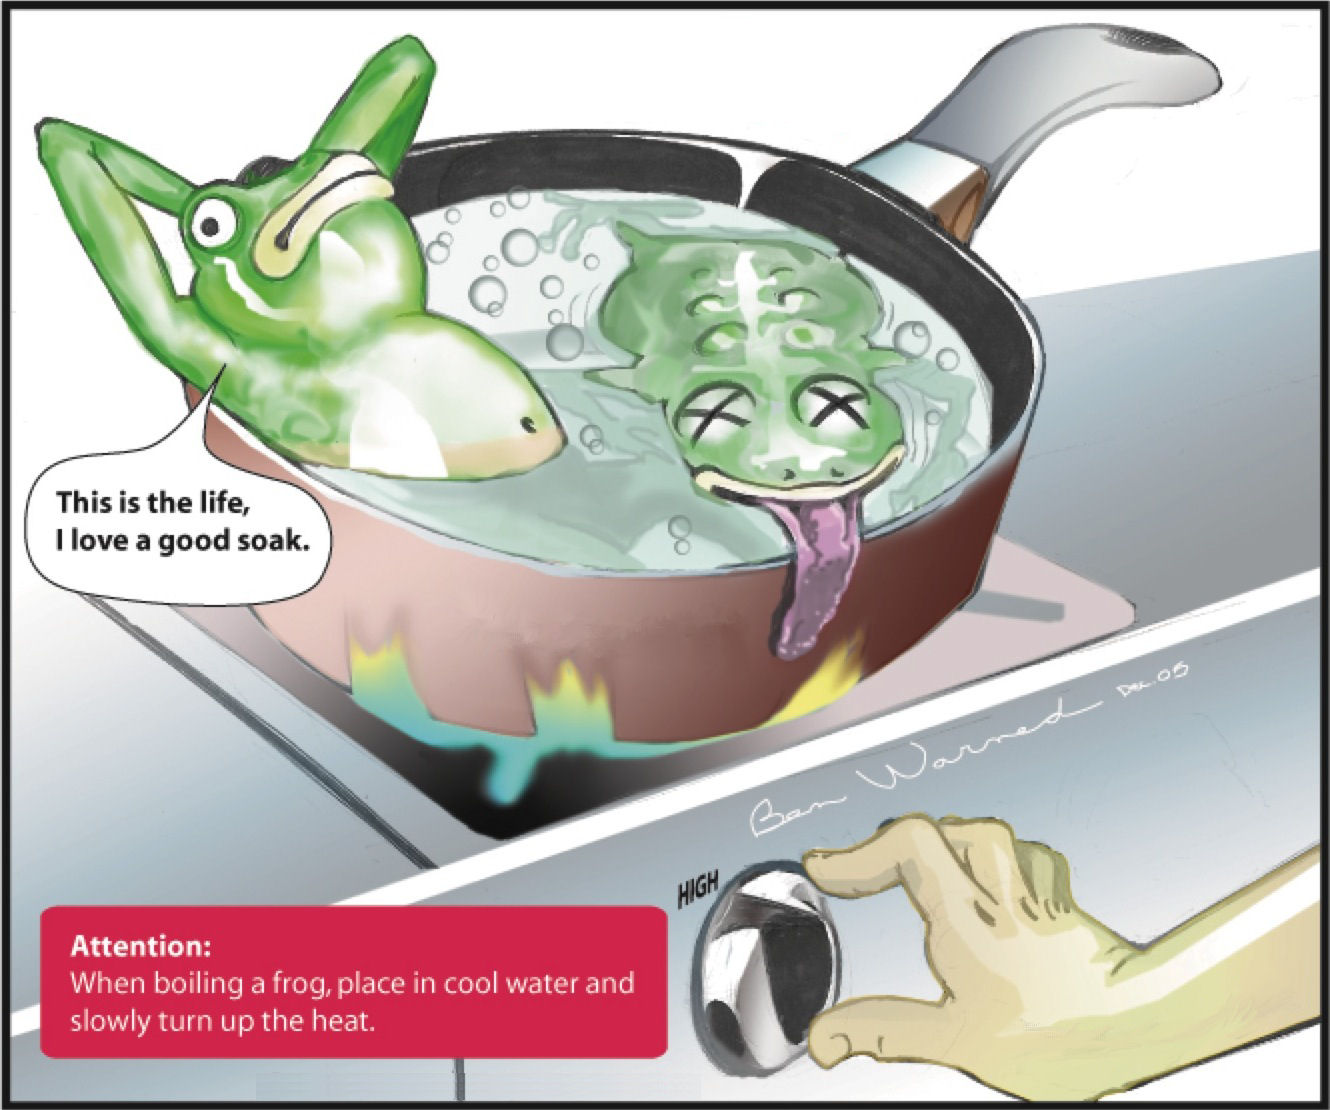 Boiling the Frog!